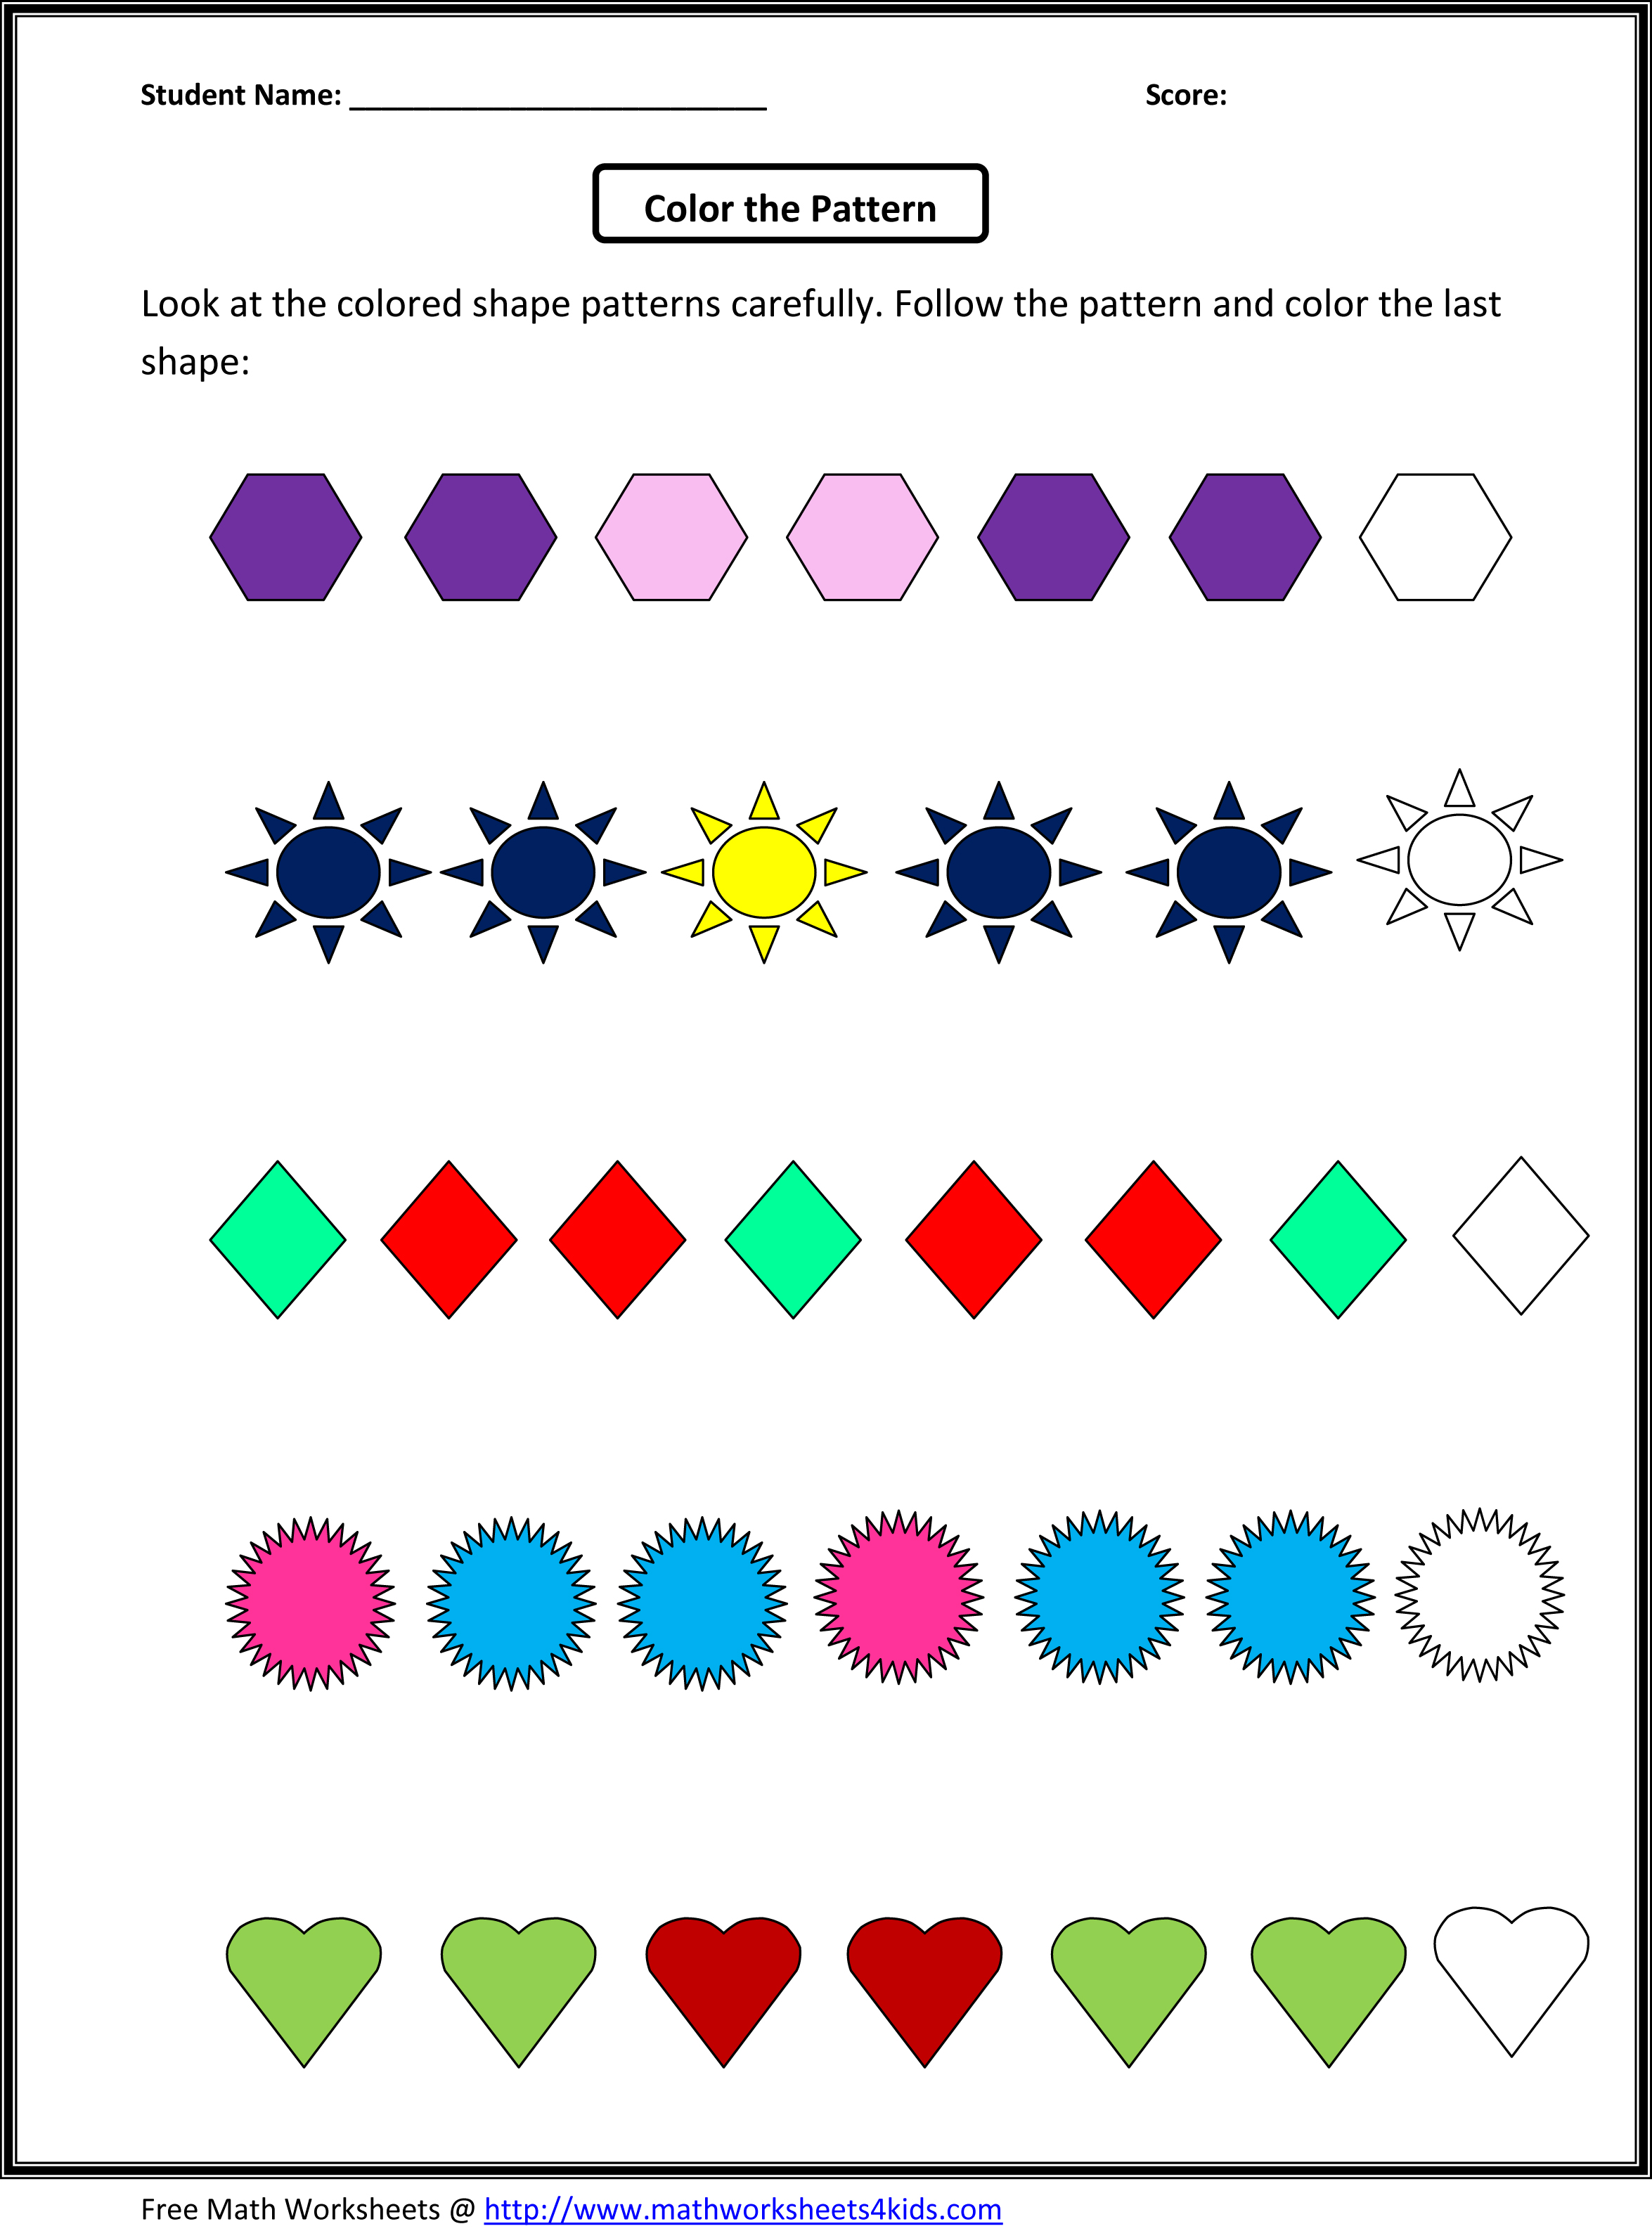 place value worksheets 2nd grade math worksheets based on place value ...